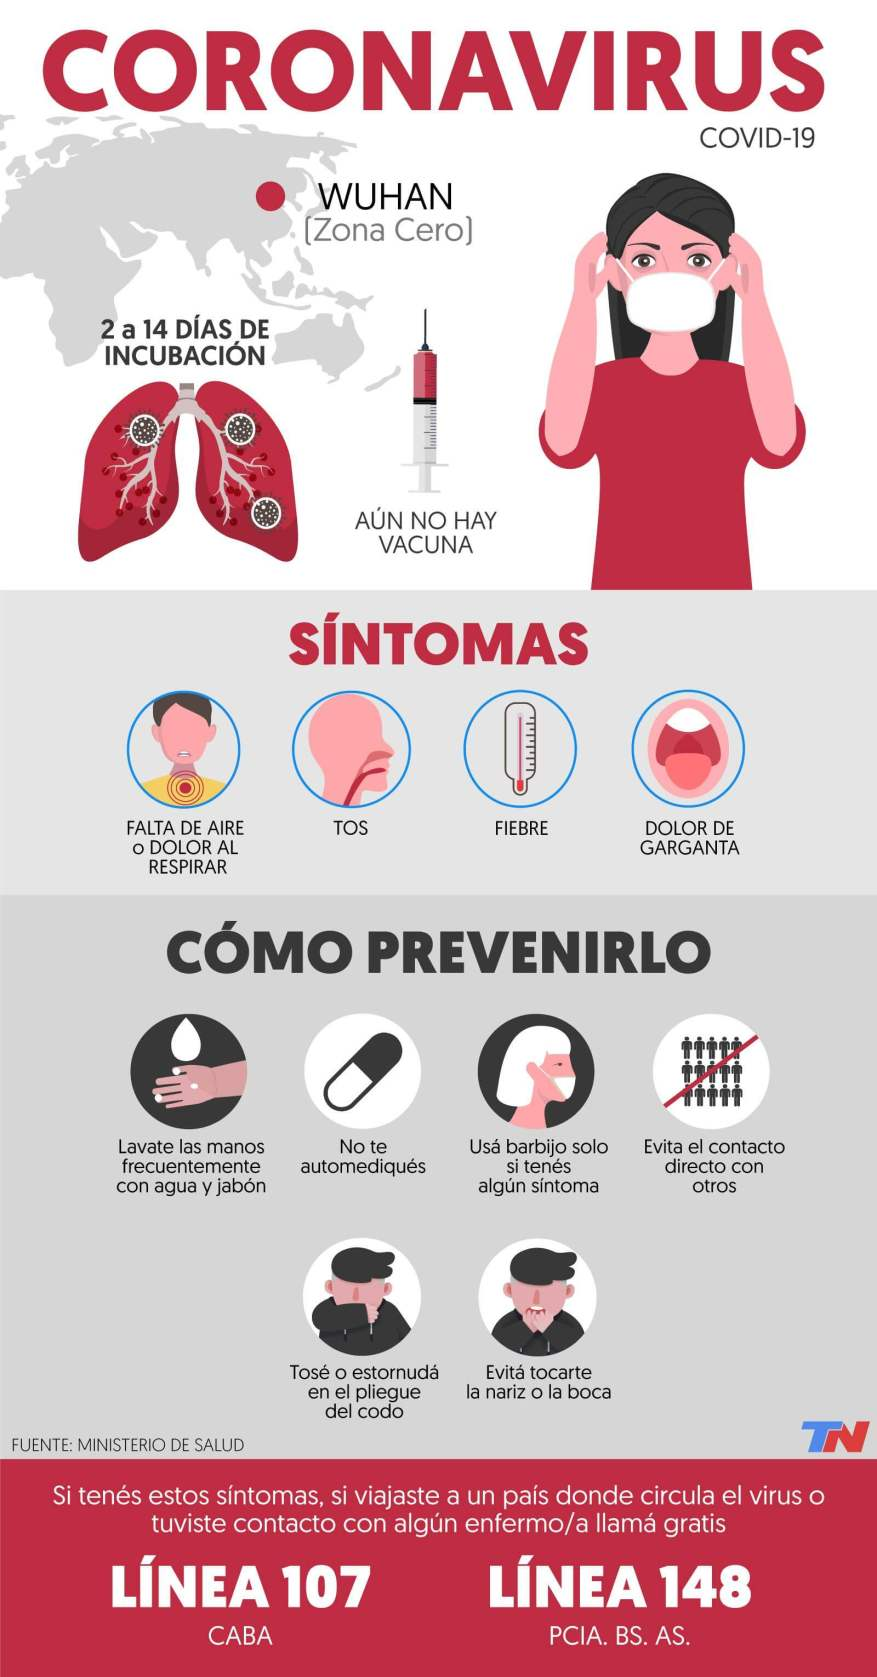 What are the symptoms of coronavirus and how is it prevented (Infographic TN.com.ar).